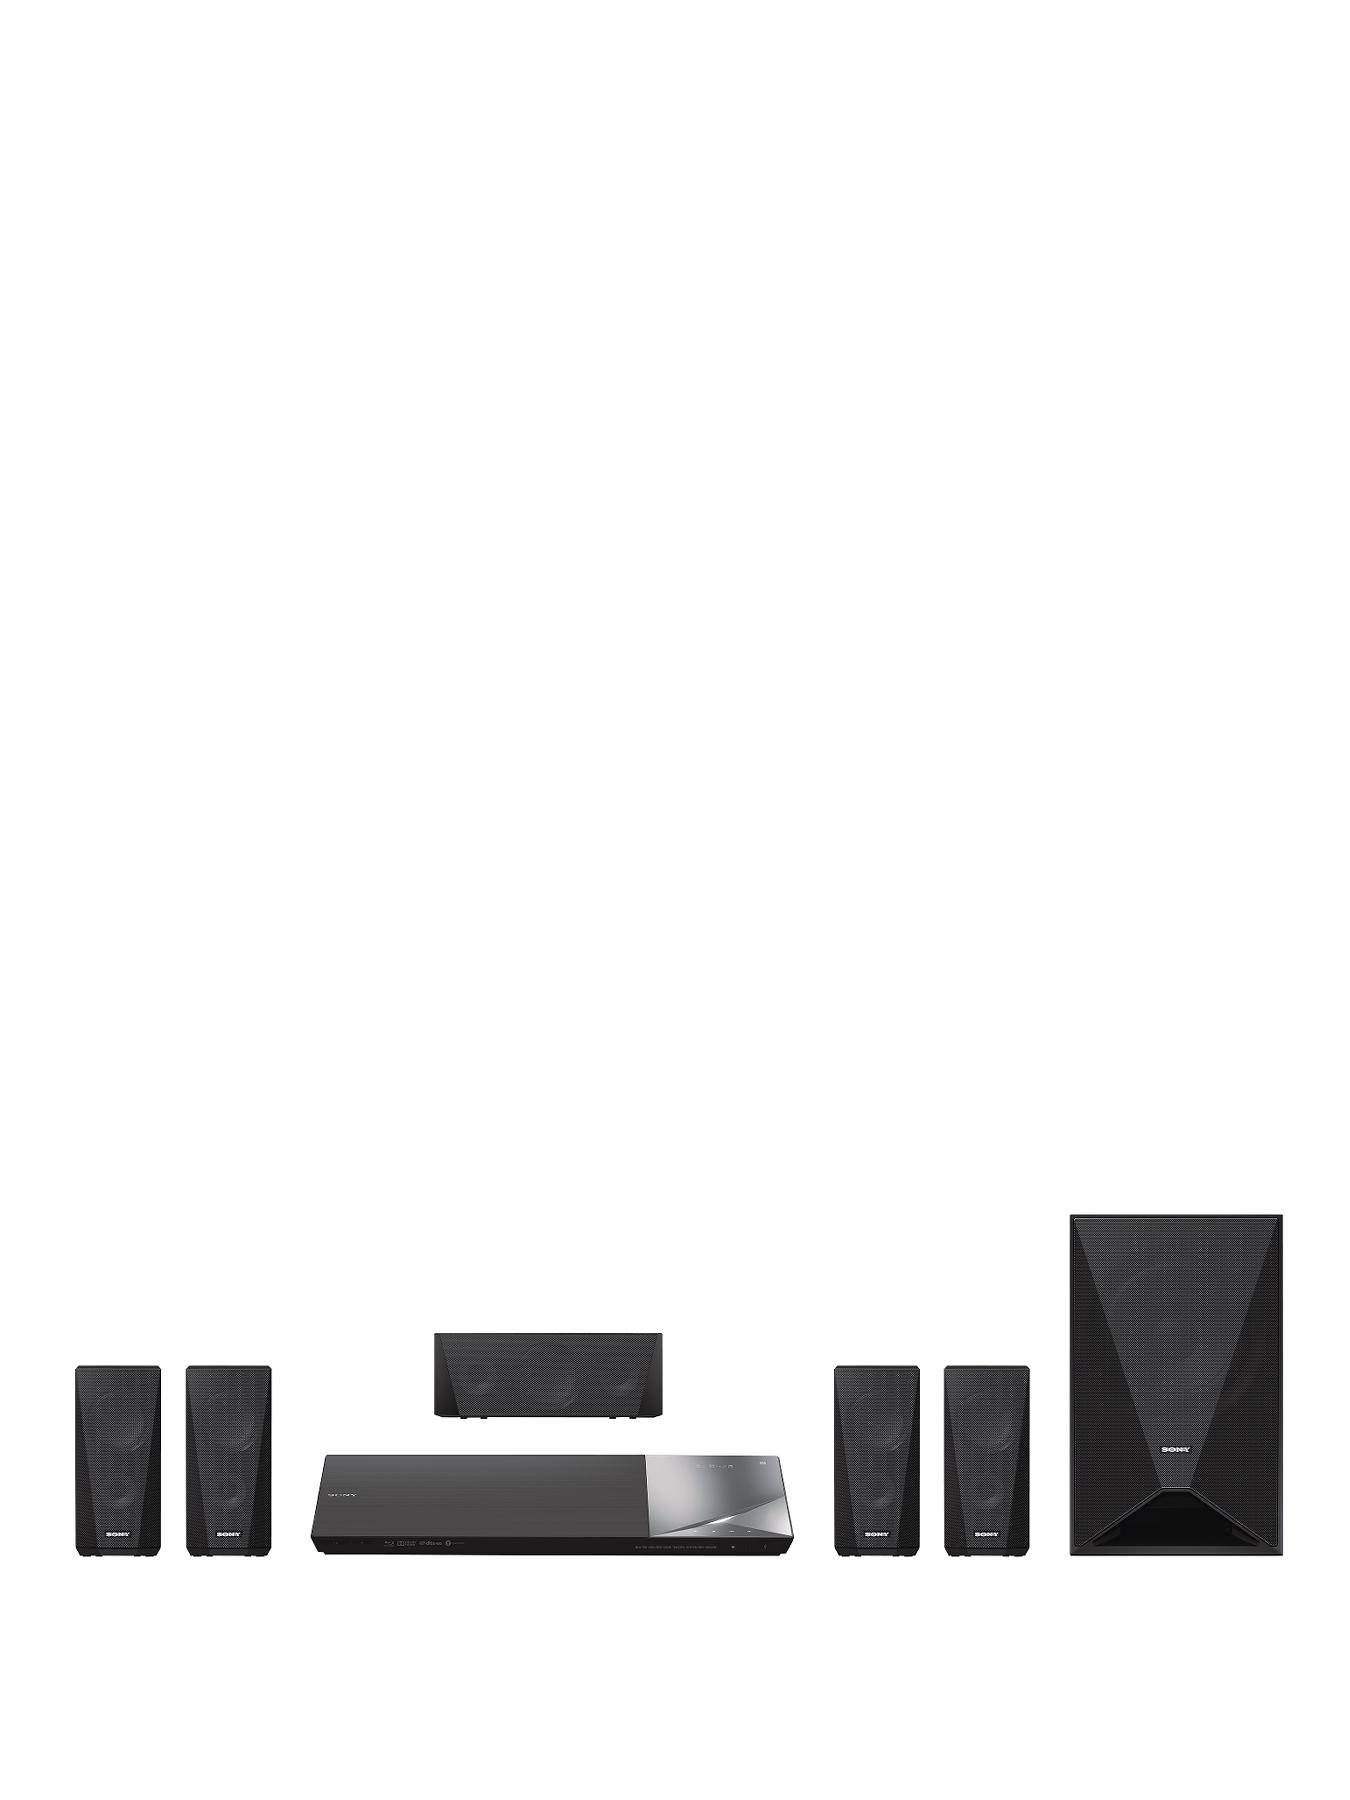 Sony BDVN5200 3D Blu-ray Home Cinema System